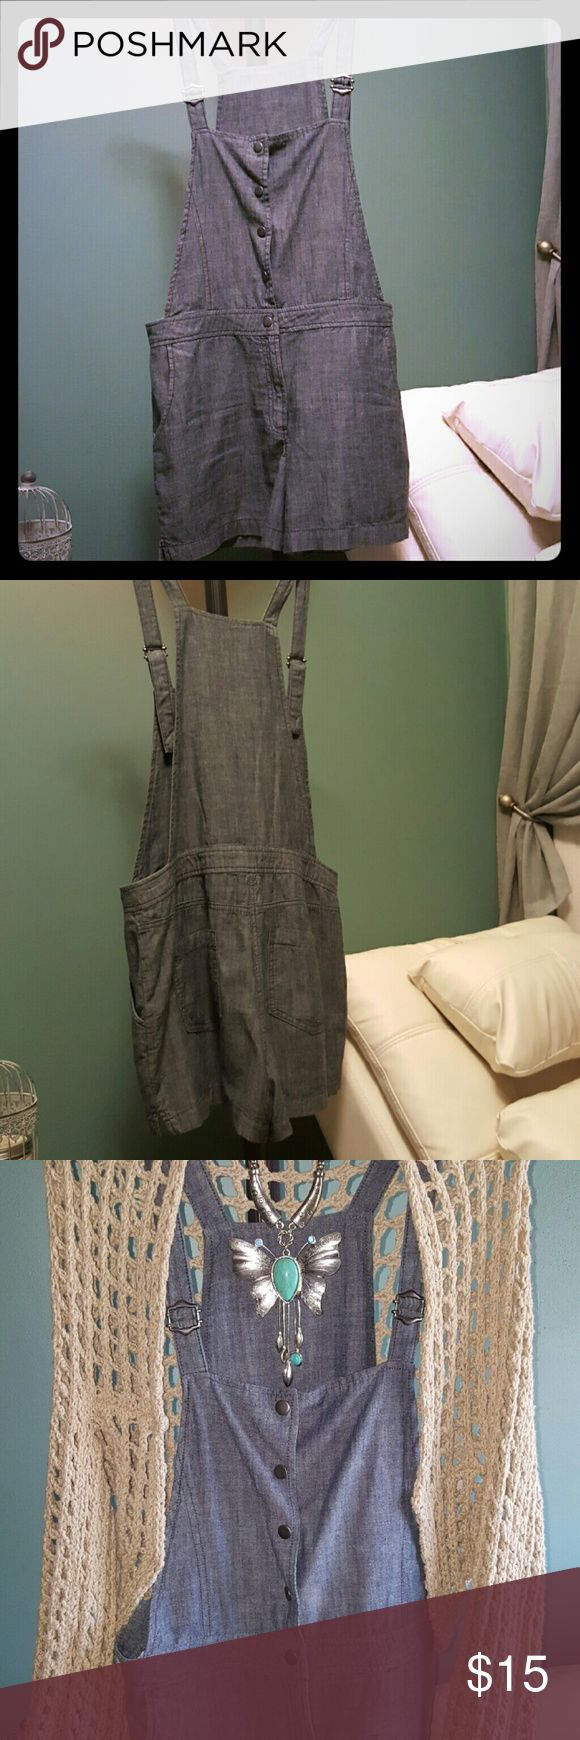 """Denim Short Romper Denim romper that comes mid upper thigh. Its not mini but not long enough for midi either. It's RESPECTABLE, let's just put it like that. Snaps up the front from waist up. Adjustable shoulder straps, so if u prefer longer shorts you can adjust to do just that. I included a """"pairing"""" pic for effect! French Connection Shorts"""